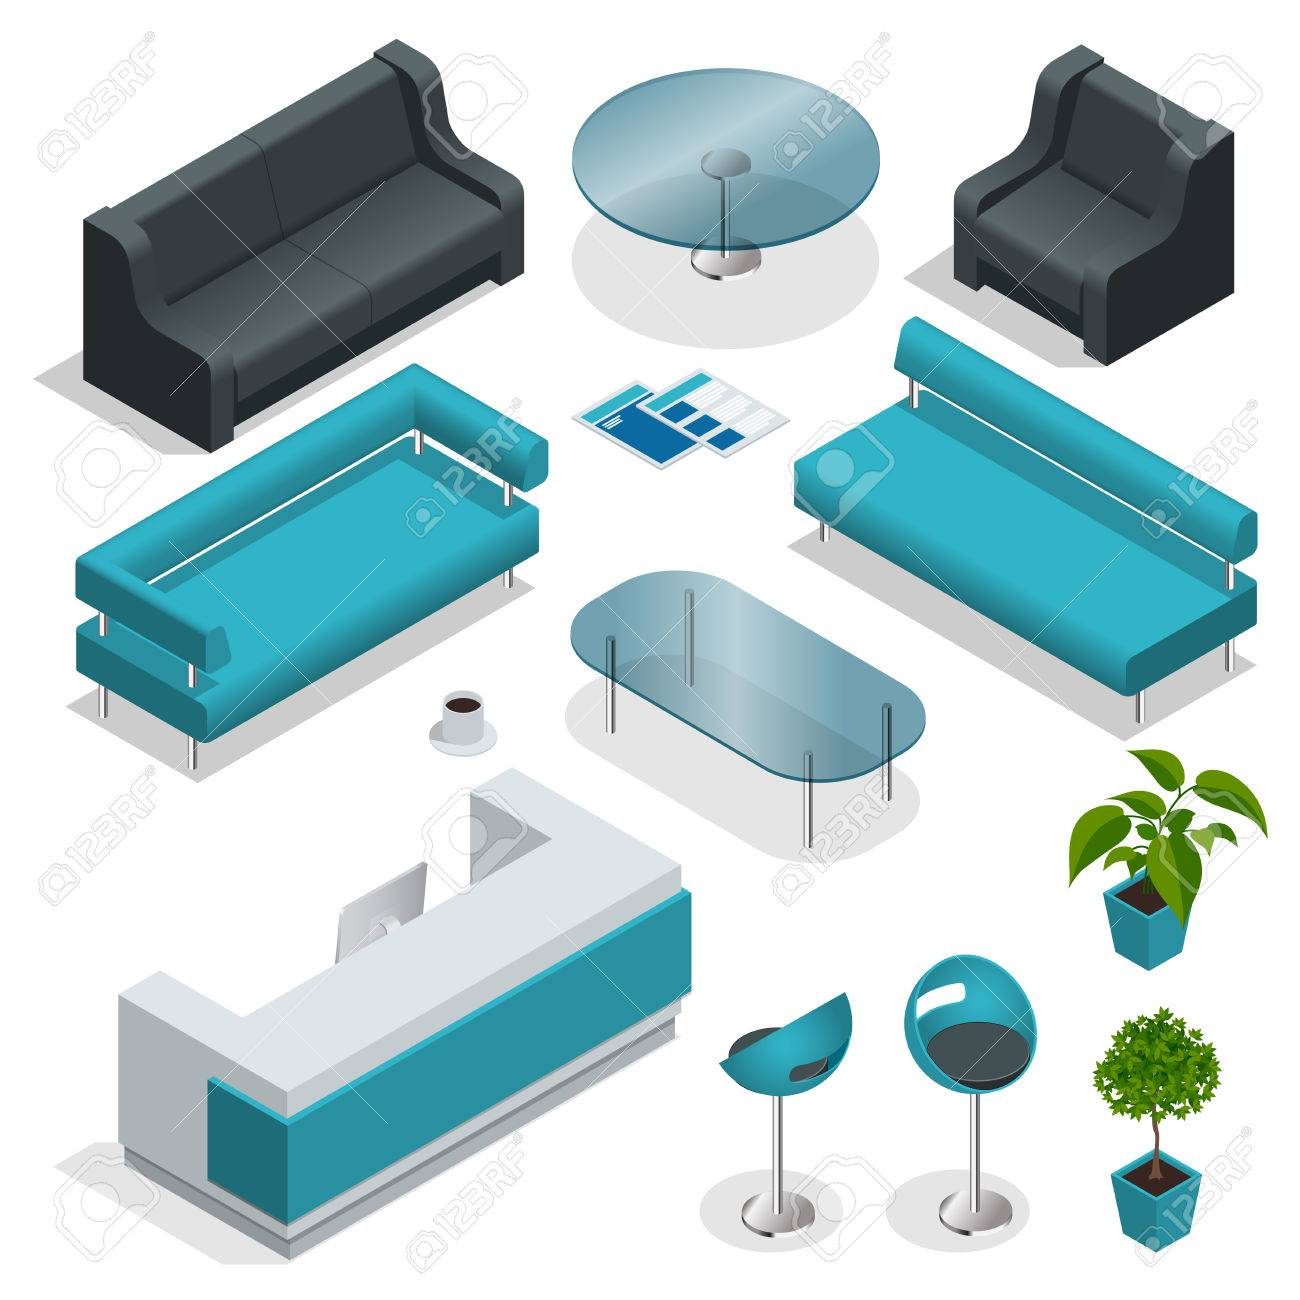 isometric office furniture vector collection. VIP Office Furniture Collection With Tables, Chairs, Plants. Isometric Icon Set Vector Graphic